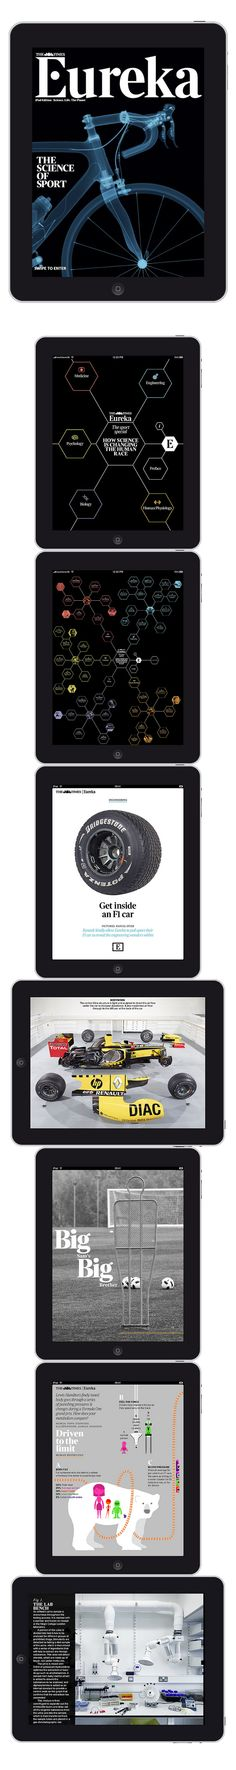 The Times's Eureka app for the iPad